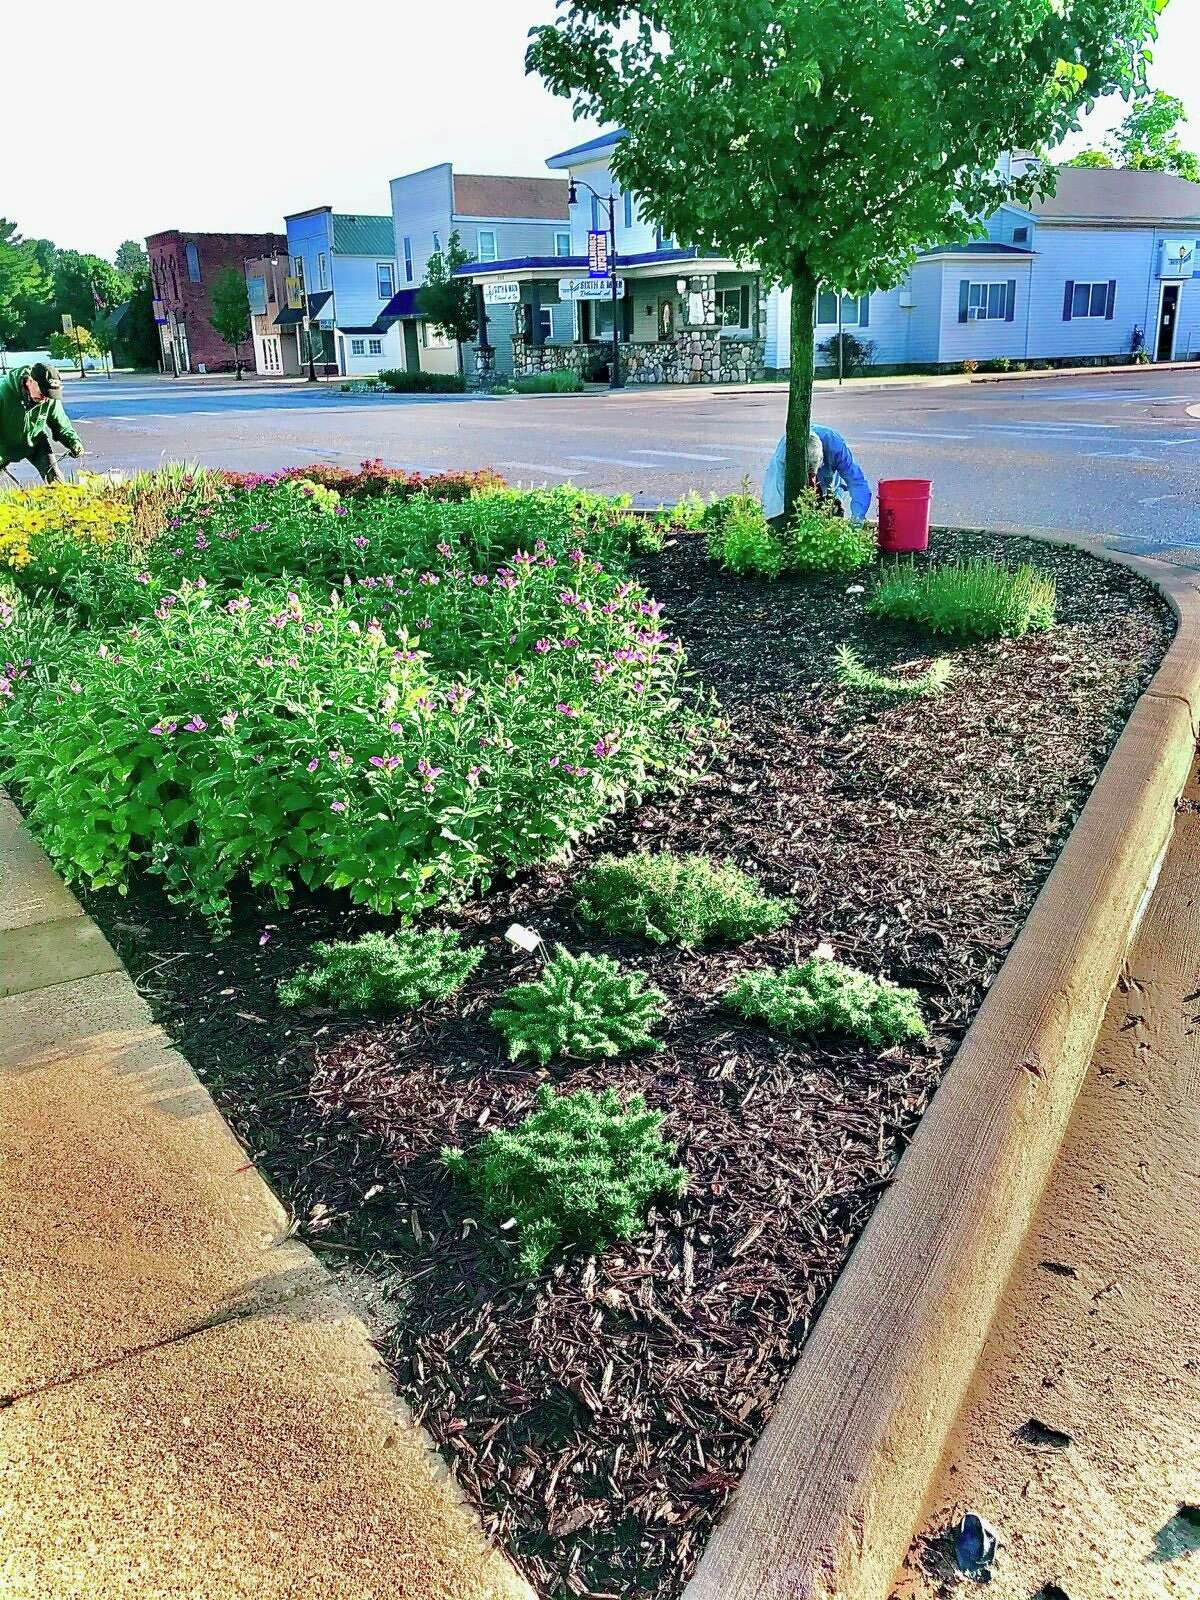 The bump-out flower beds in downtown Evart have been cleaned up a replanted by the Evart Garden Club, creating a Monarch Waystation with native plants that can be easily maintained. The club will continue its work this spring, adding more plants and more flowerbeds. (Submitted photo)